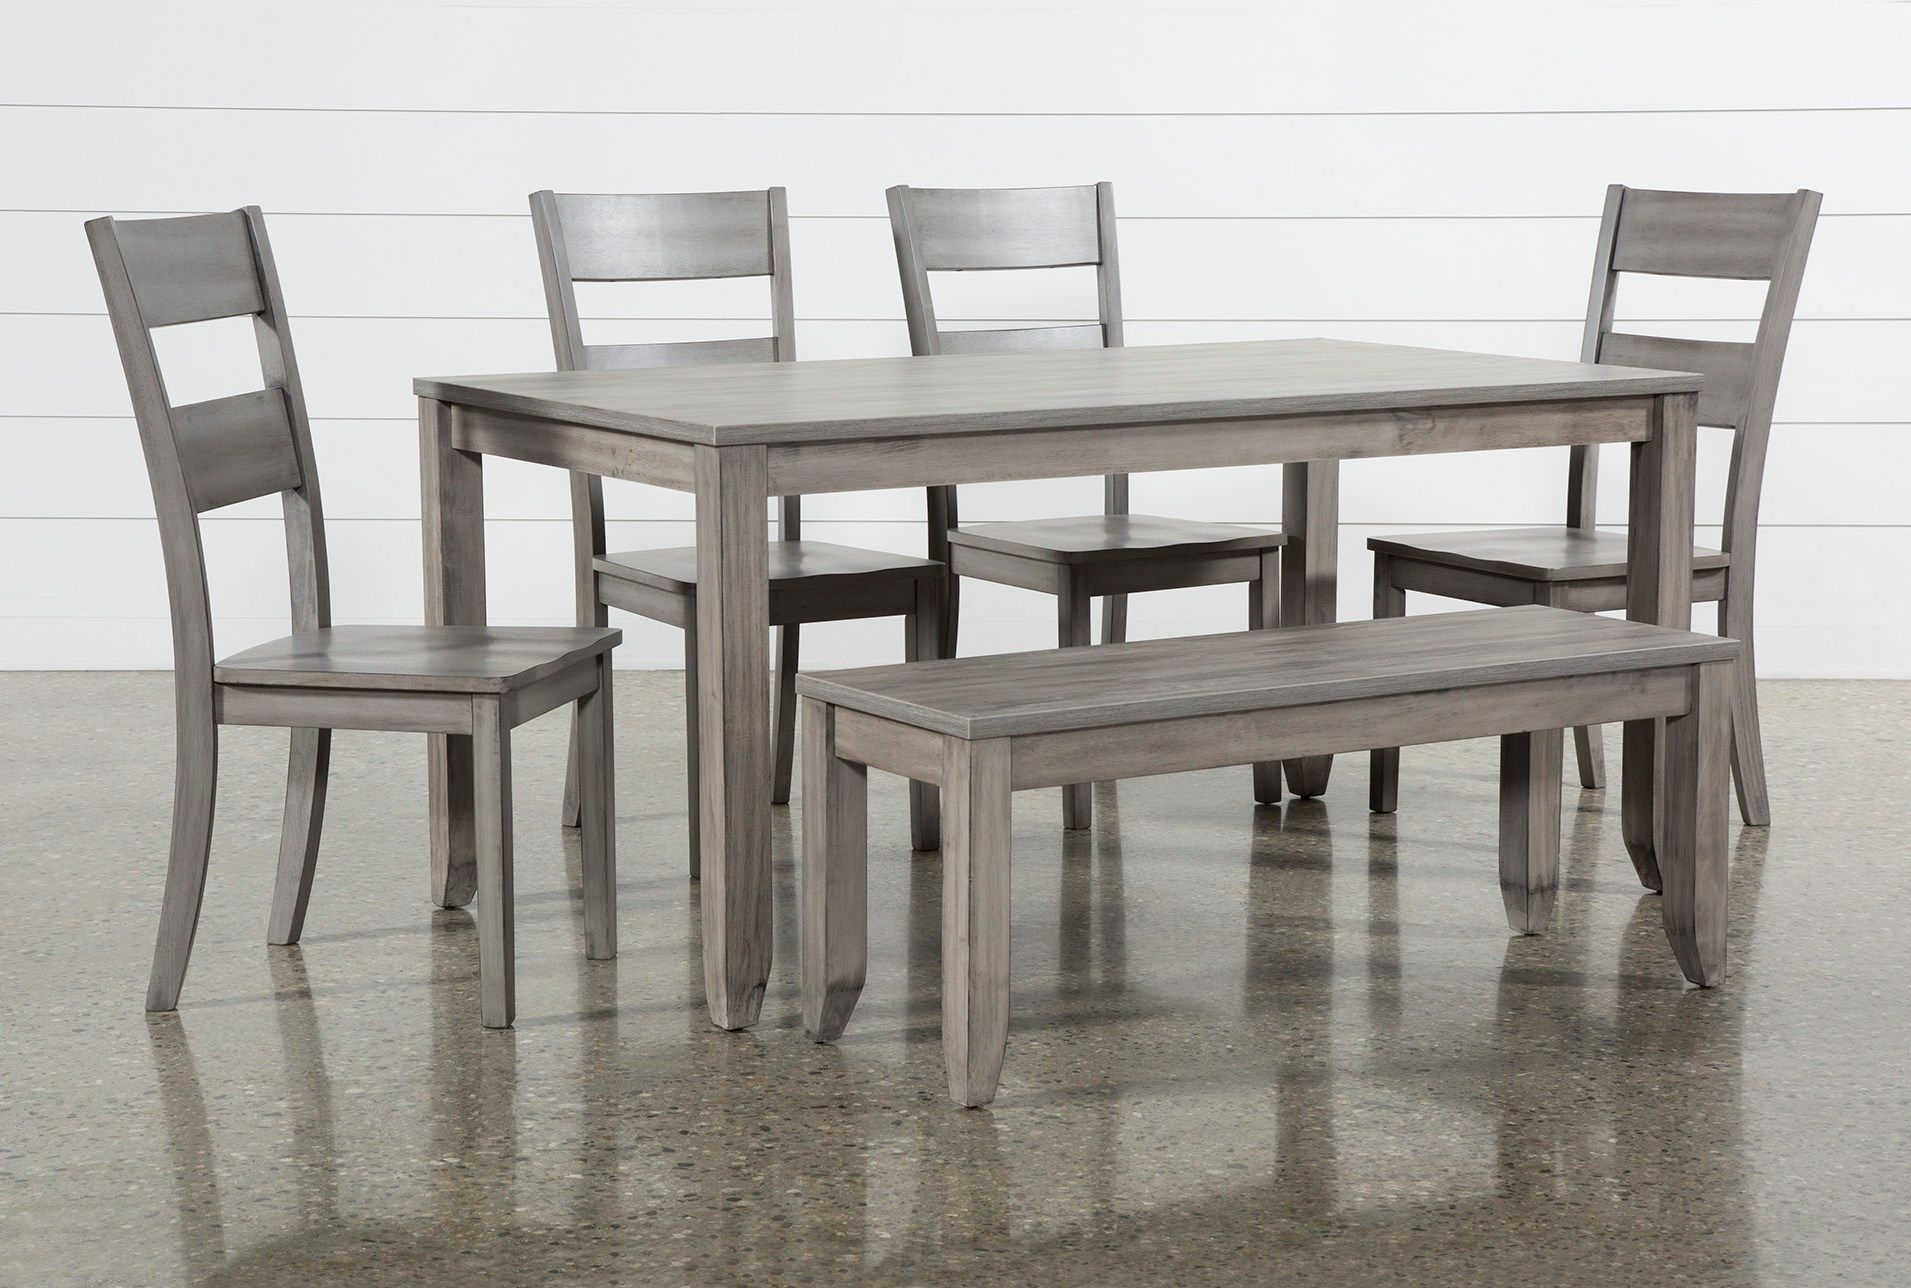 With Its Contemporary Lines And Distressed Finish The Matias Collection Brings A Simple Yet Defin Dining Room Sets Solid Wood Chairs Round Dining Table Sets